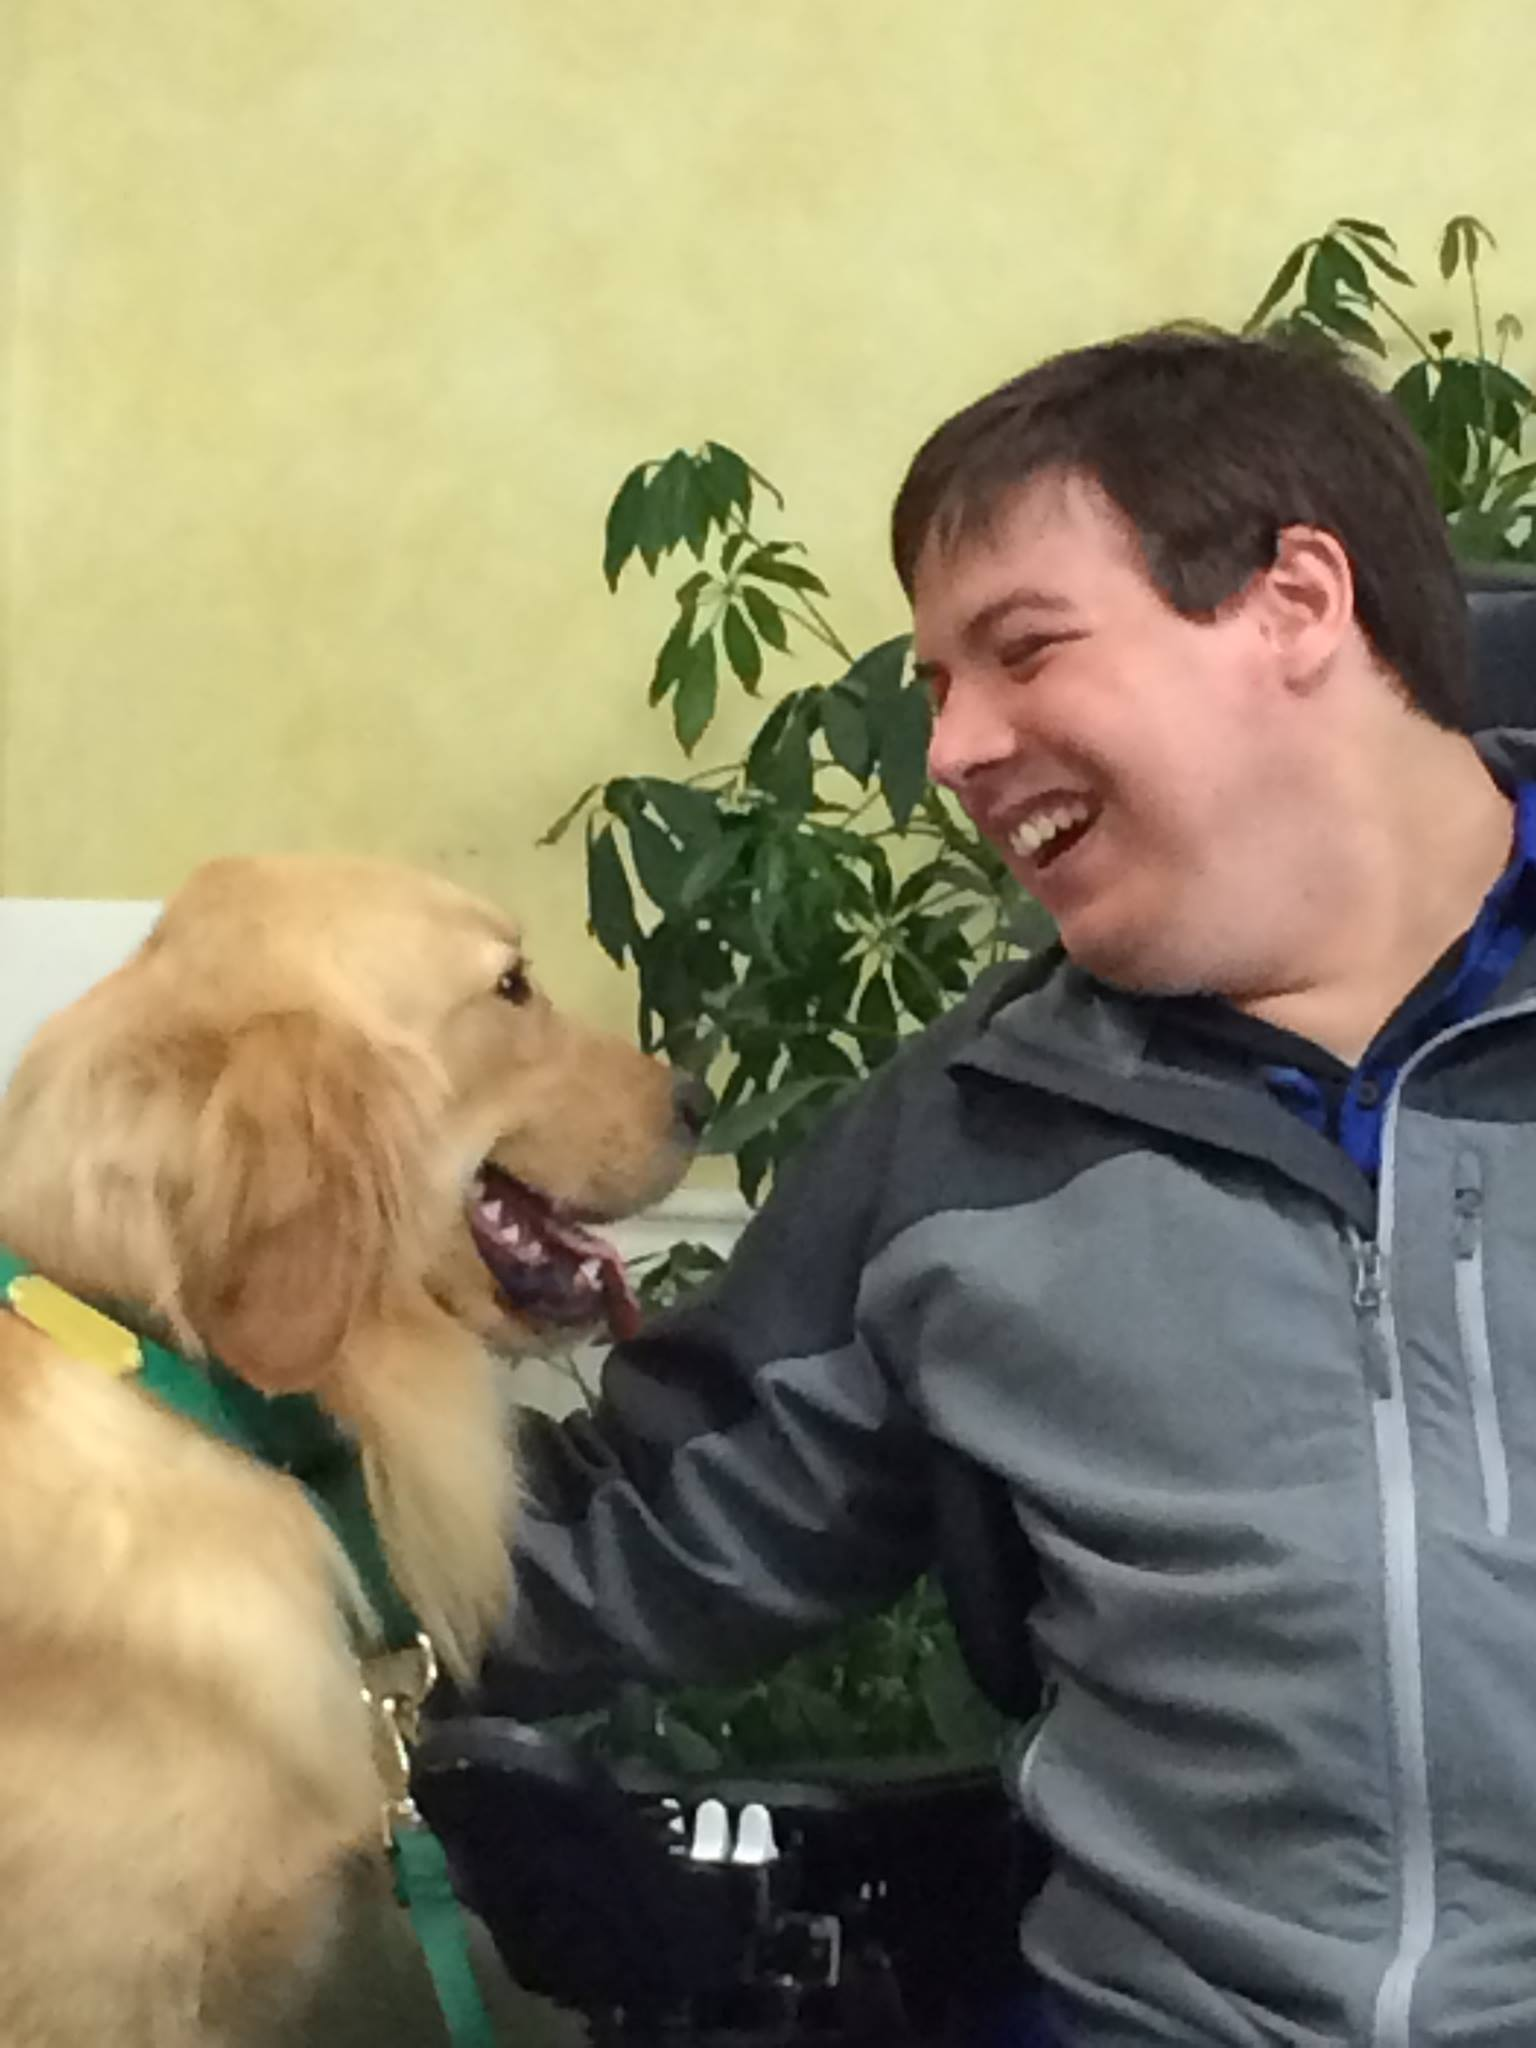 Special Needs? Tim Beighley: Wonderfully Made